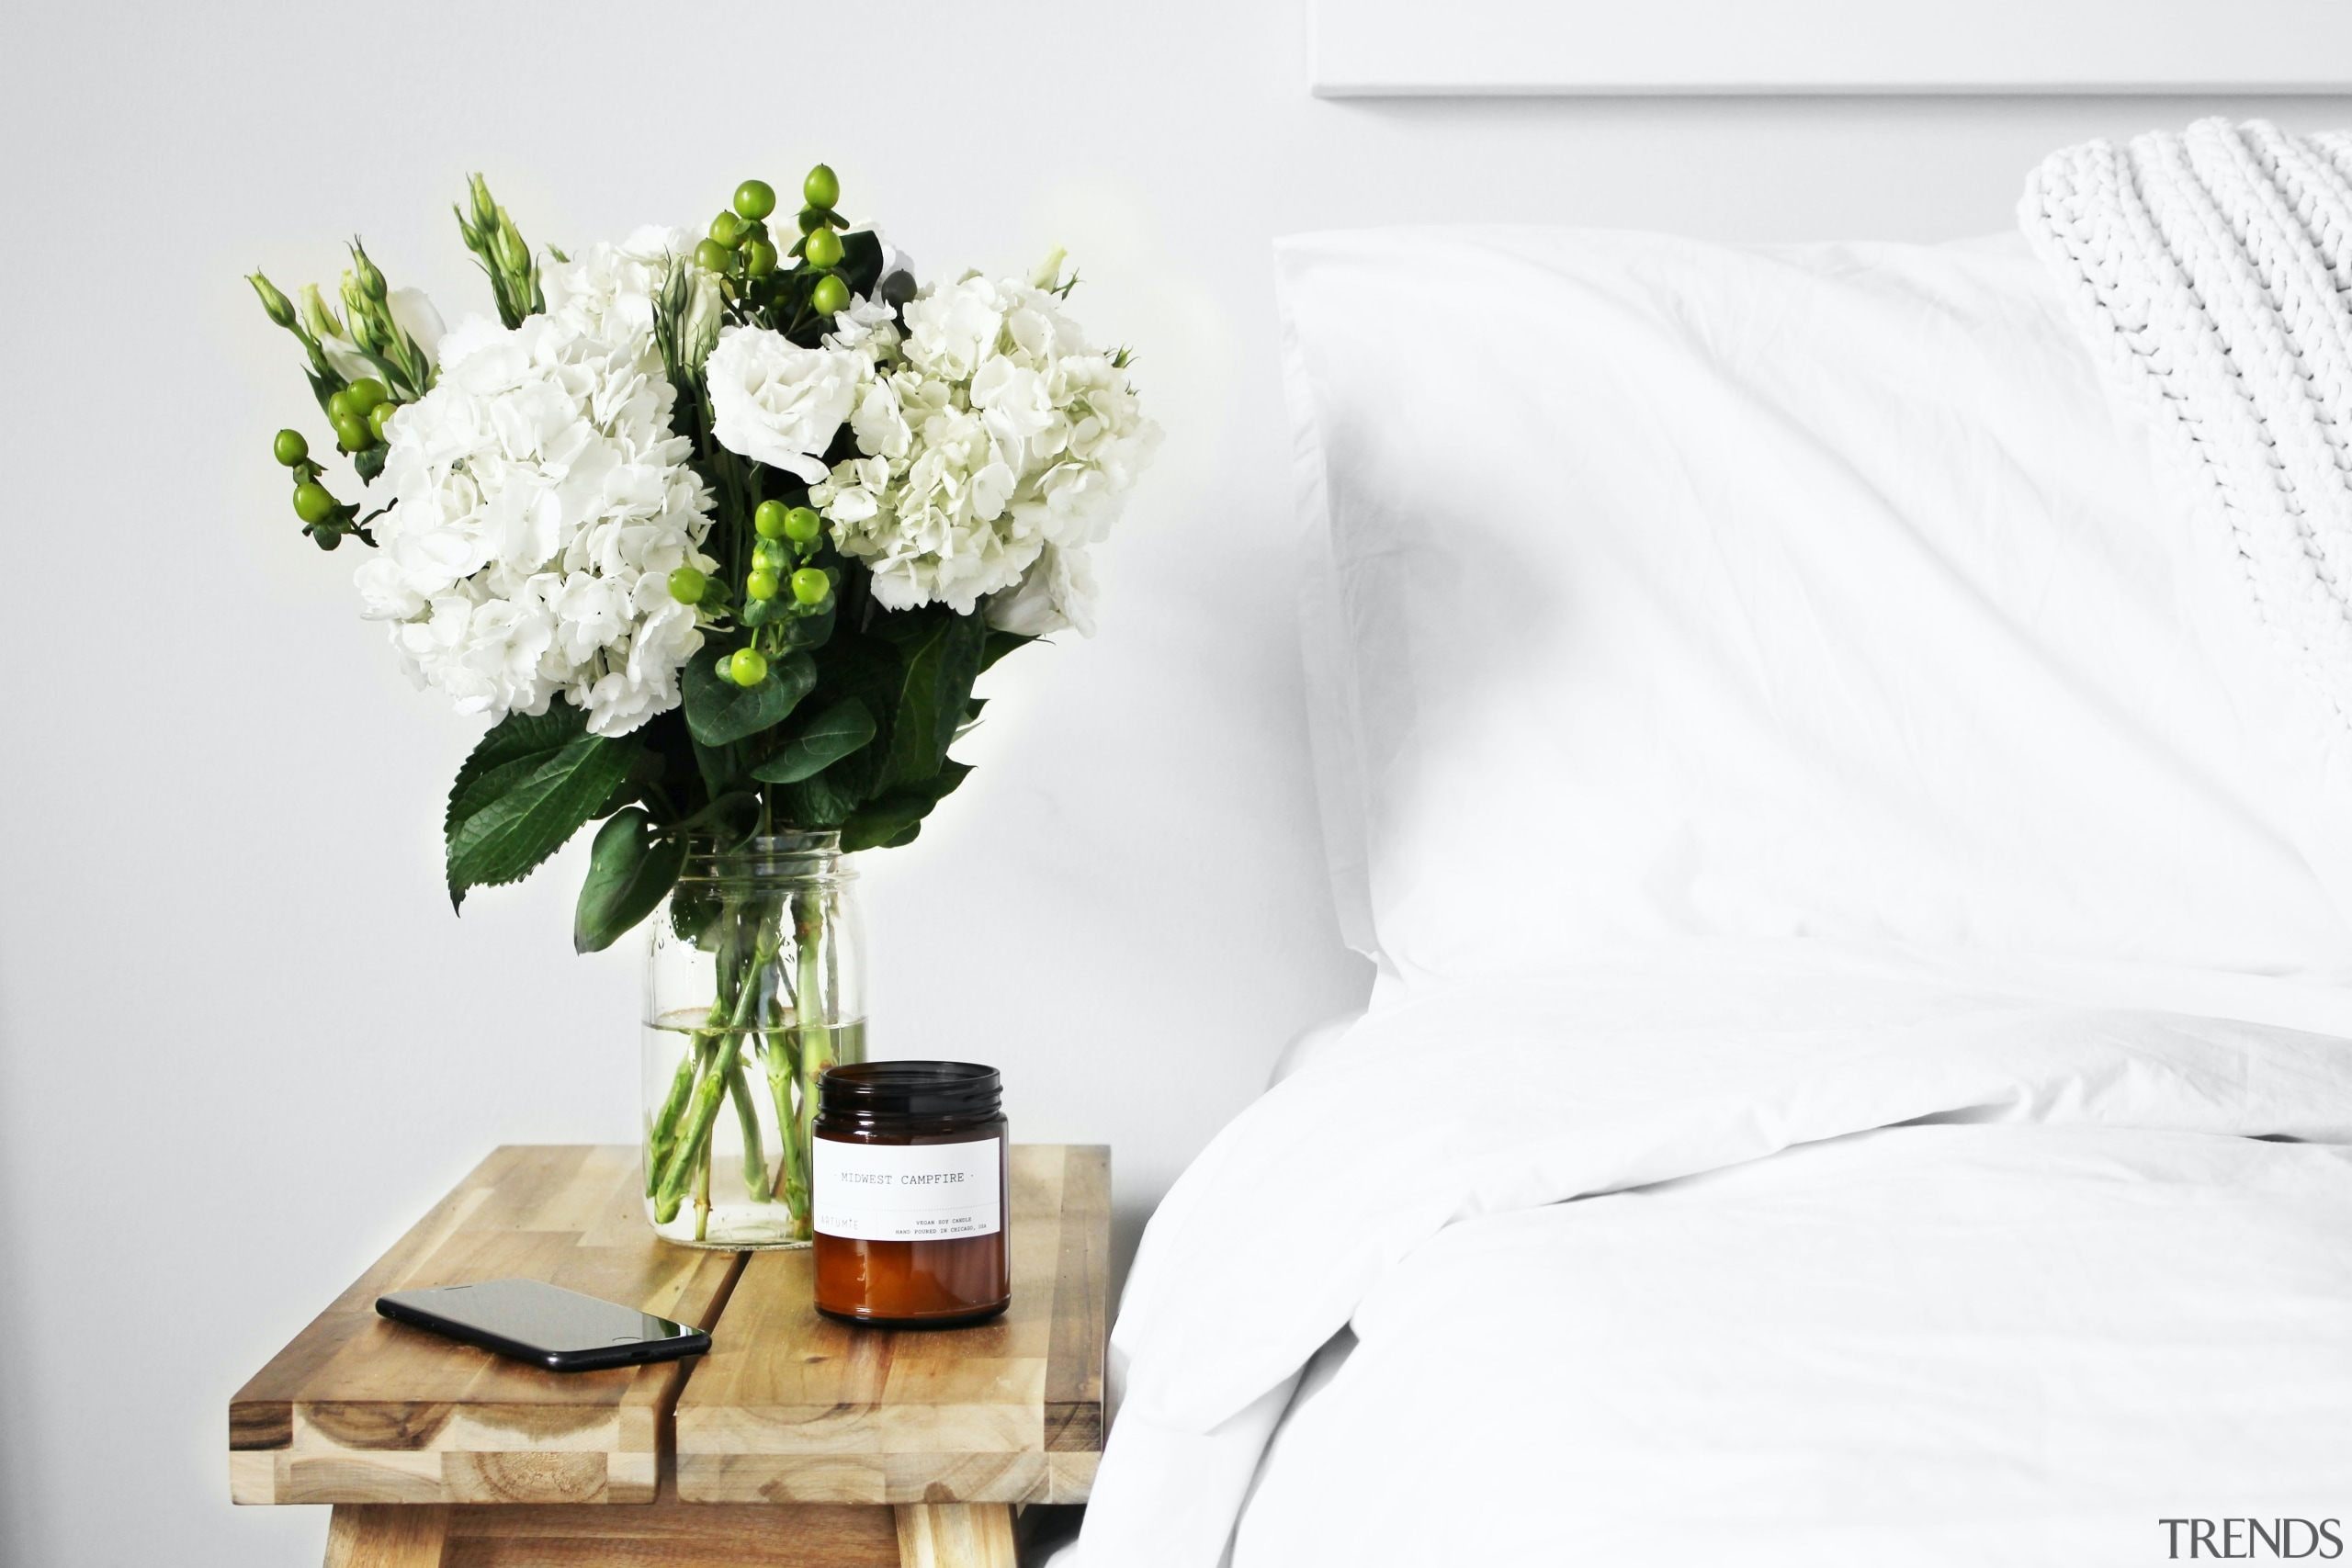 Flowers on bedside table -